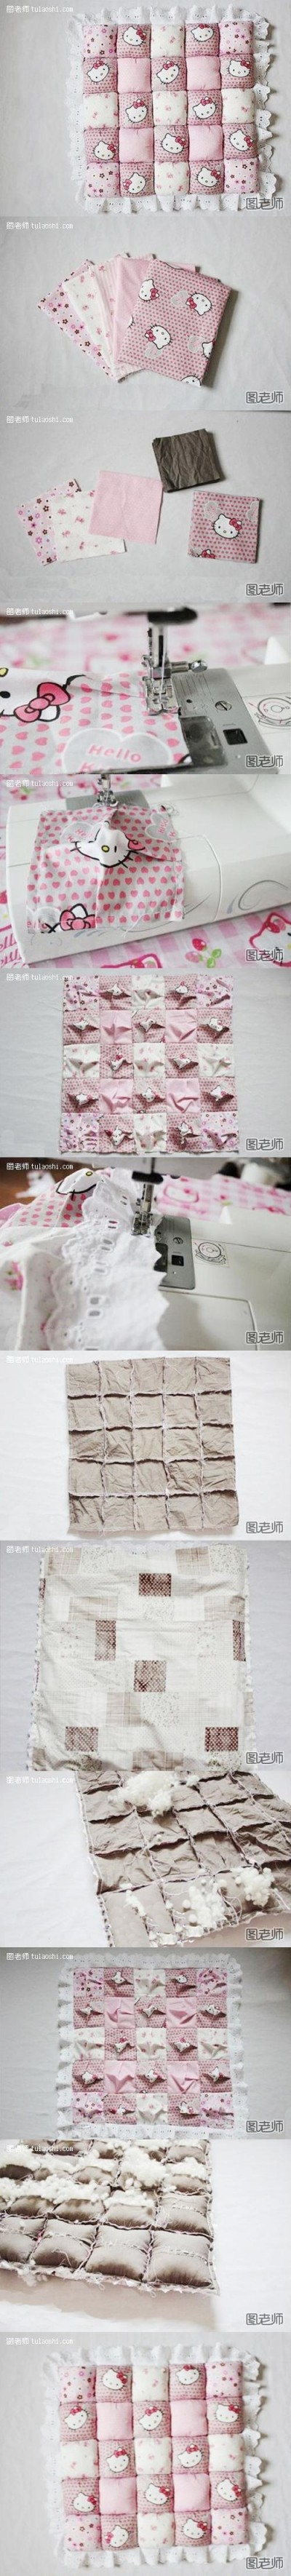 How to make lovely pillow step by step DIY instructions